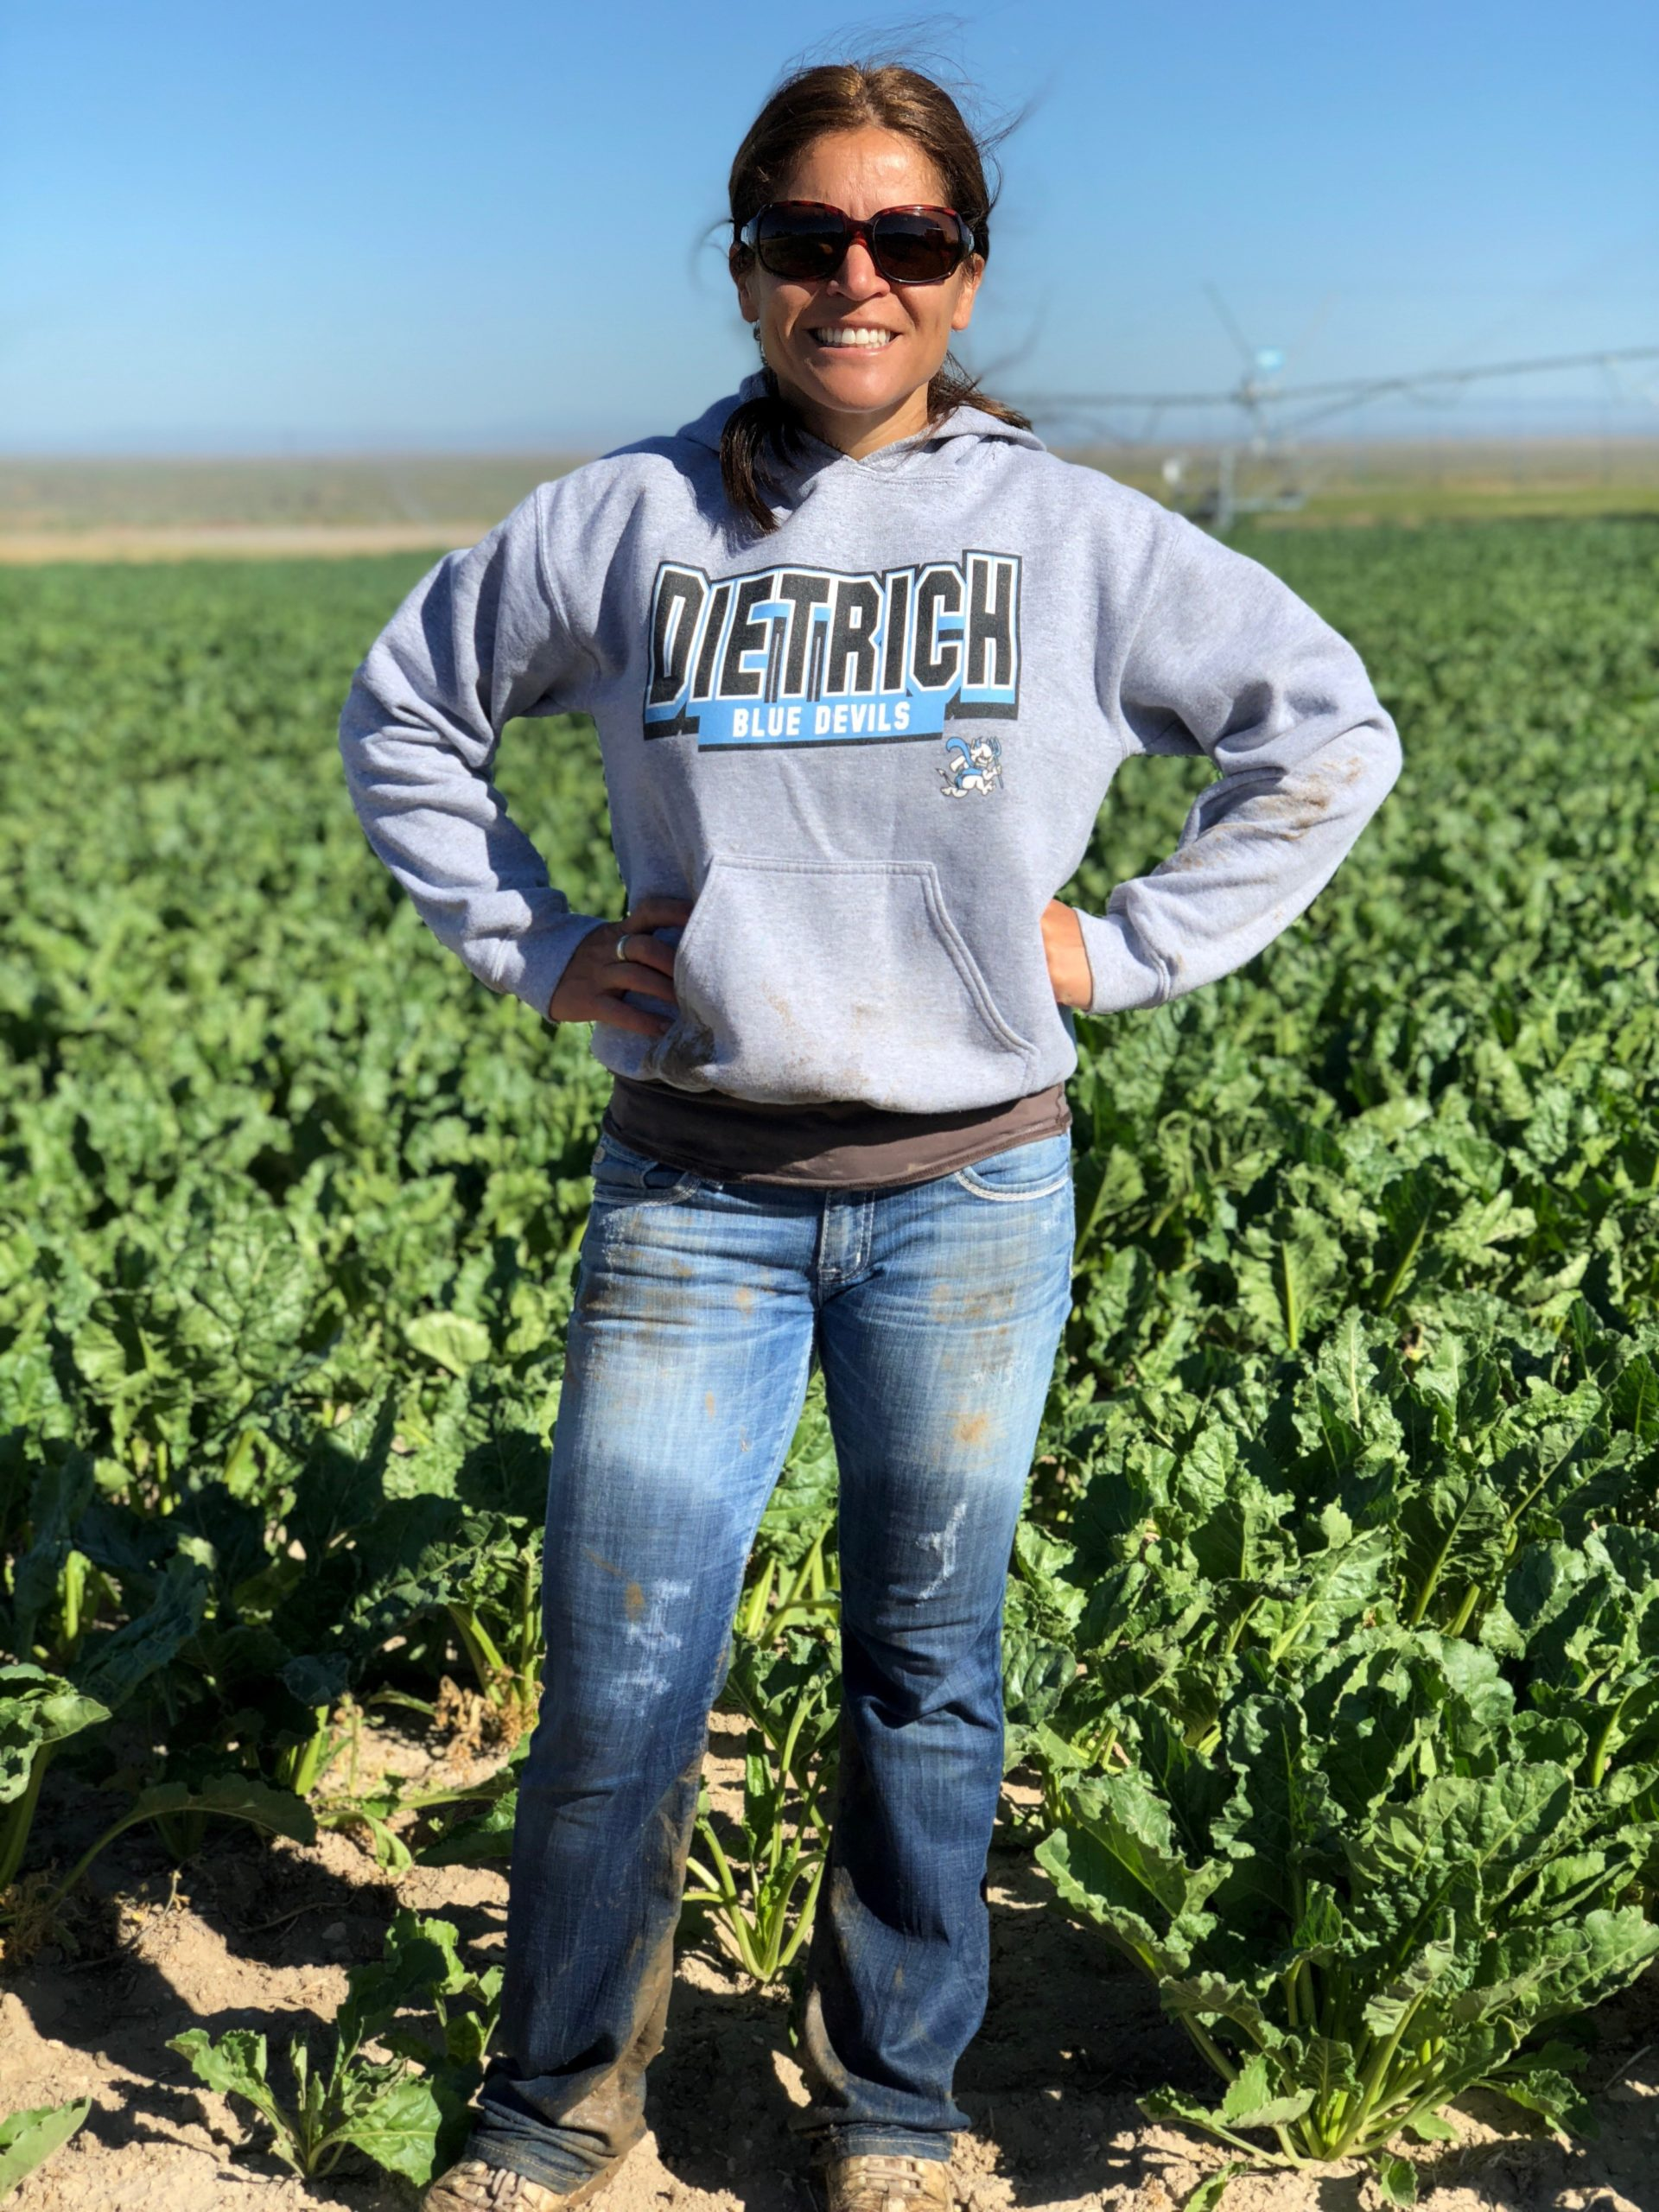 Mindy after helping the kids move their hand lines (irrigation) in their beet shares.